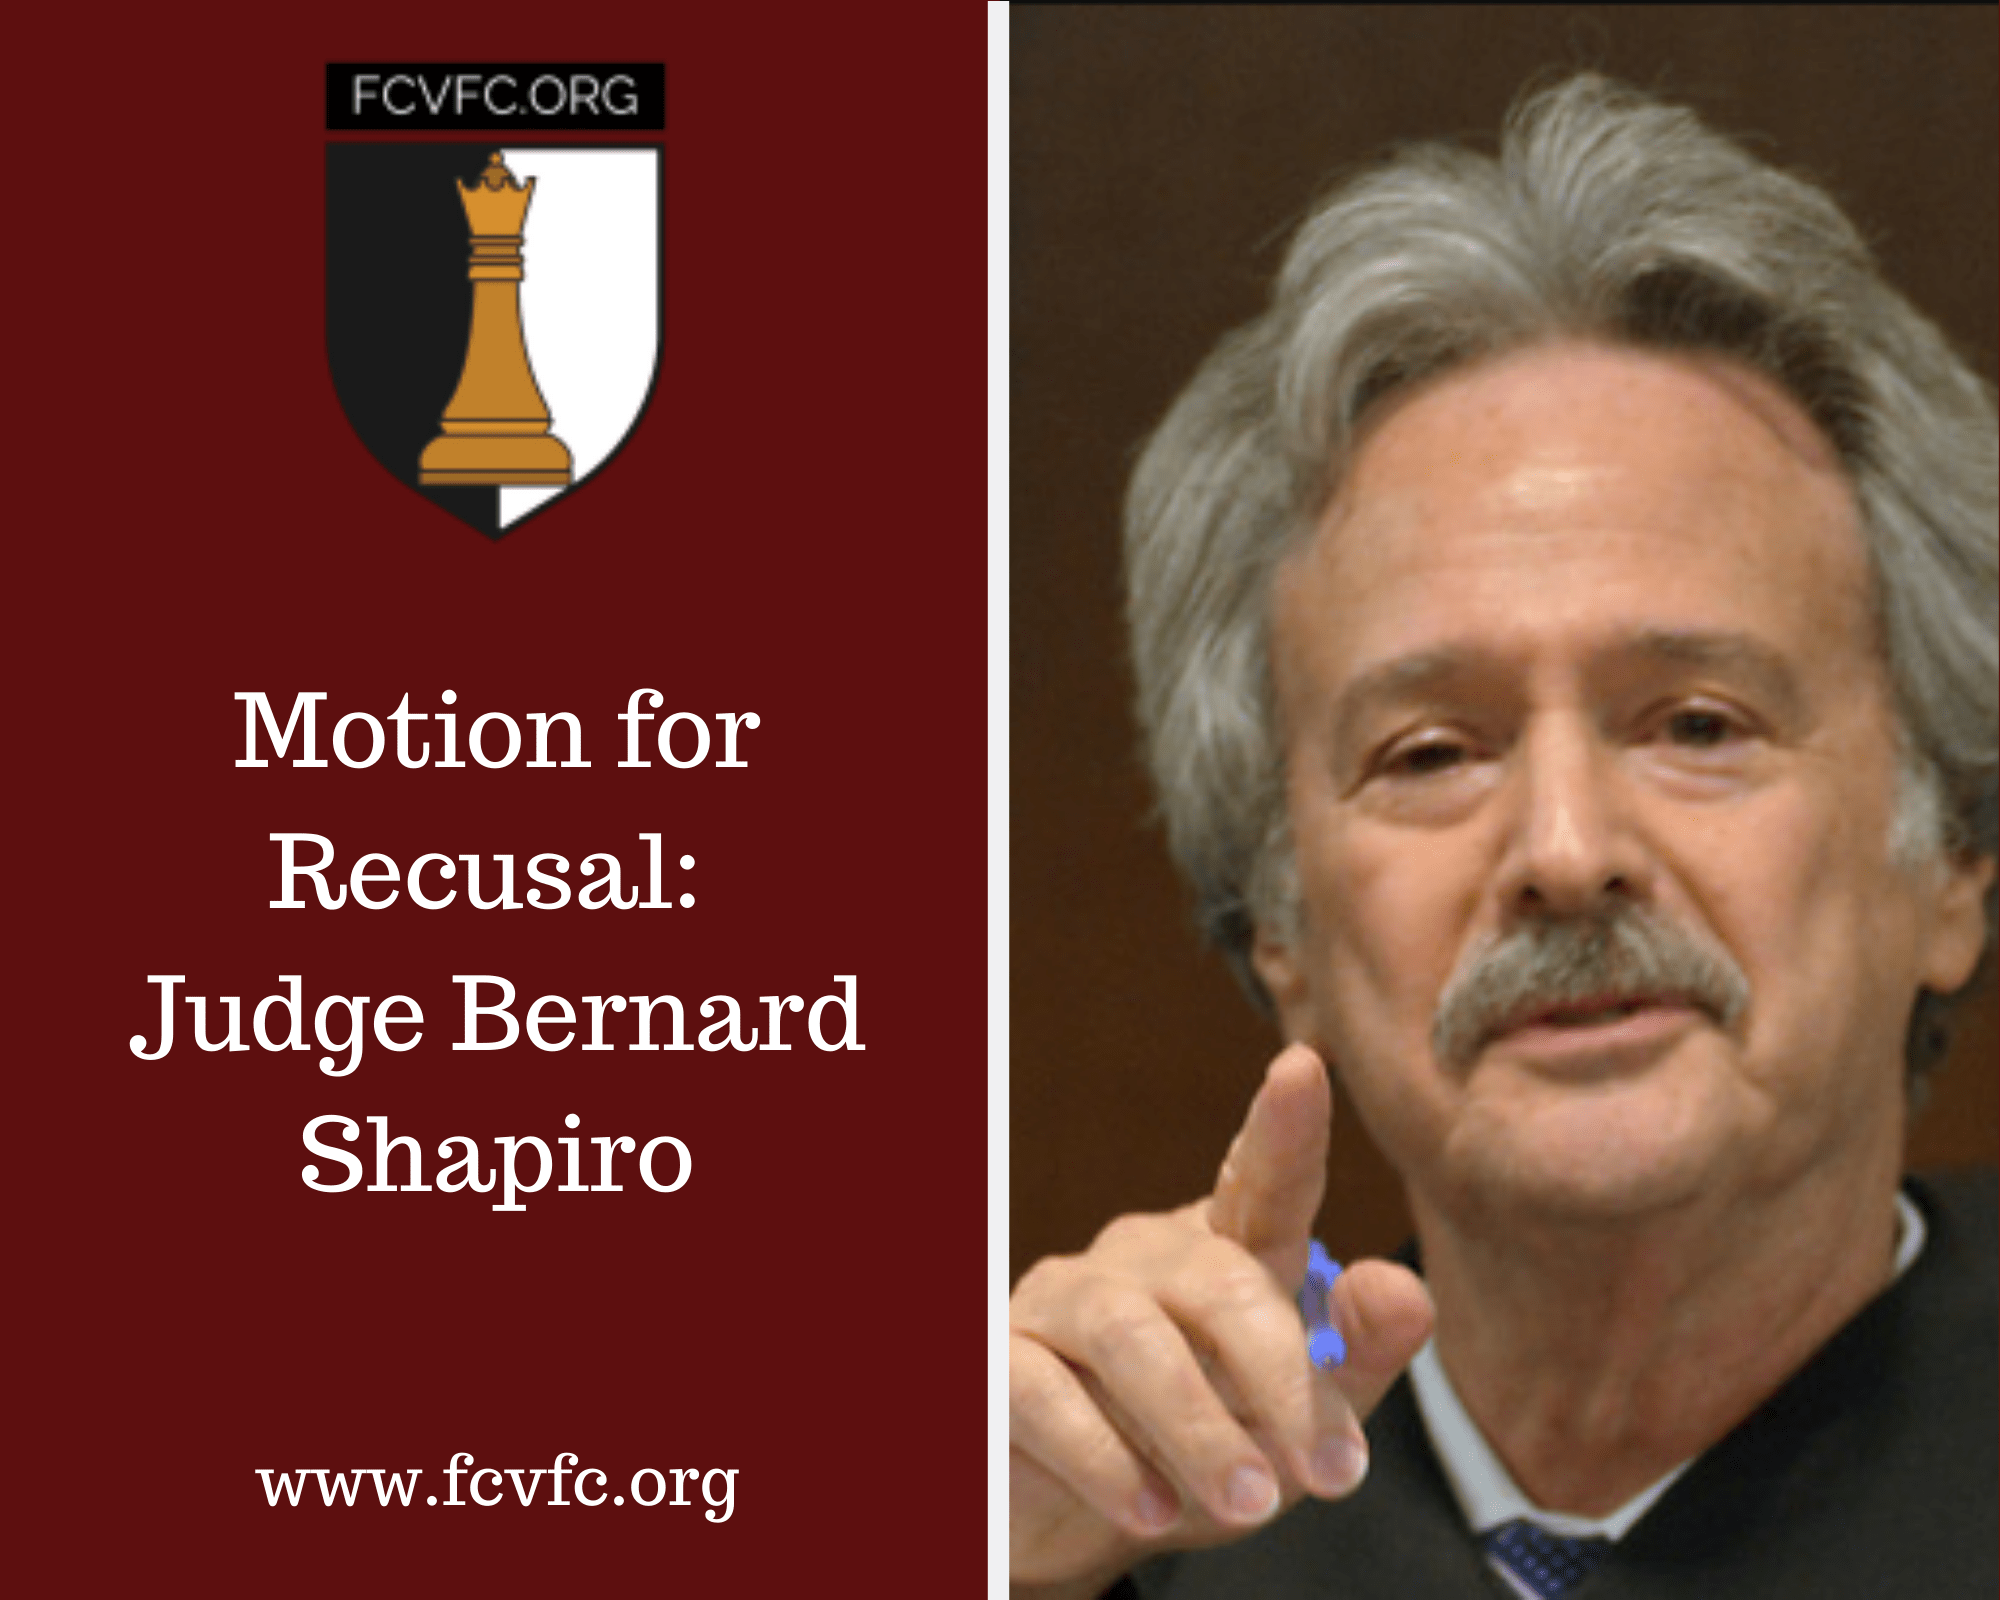 Motion for Recusal: Judge Bernard Shapiro